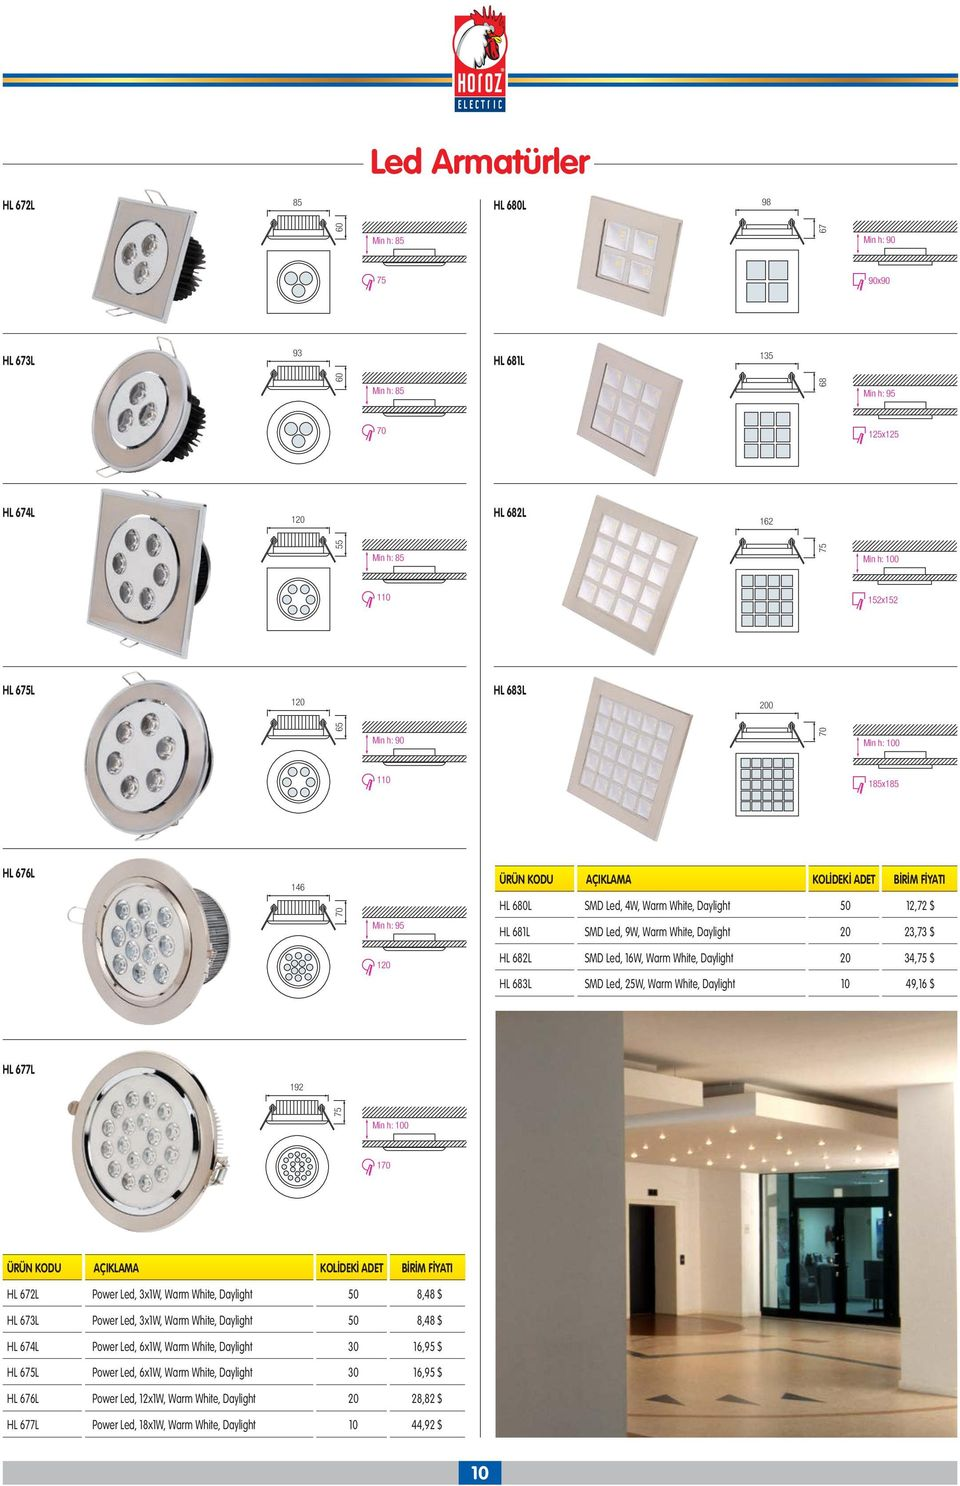 Warm White, Daylight 20 34,75 $ HL 683L SMD Led, 25W, Warm White, Daylight 10 49,16 $ HL 677L 192 75 Min h: 100 185x185 Min h: 100 170 HL 672L Power Led, 3x1W, Warm White, Daylight 50 8,48 $ HL 673L